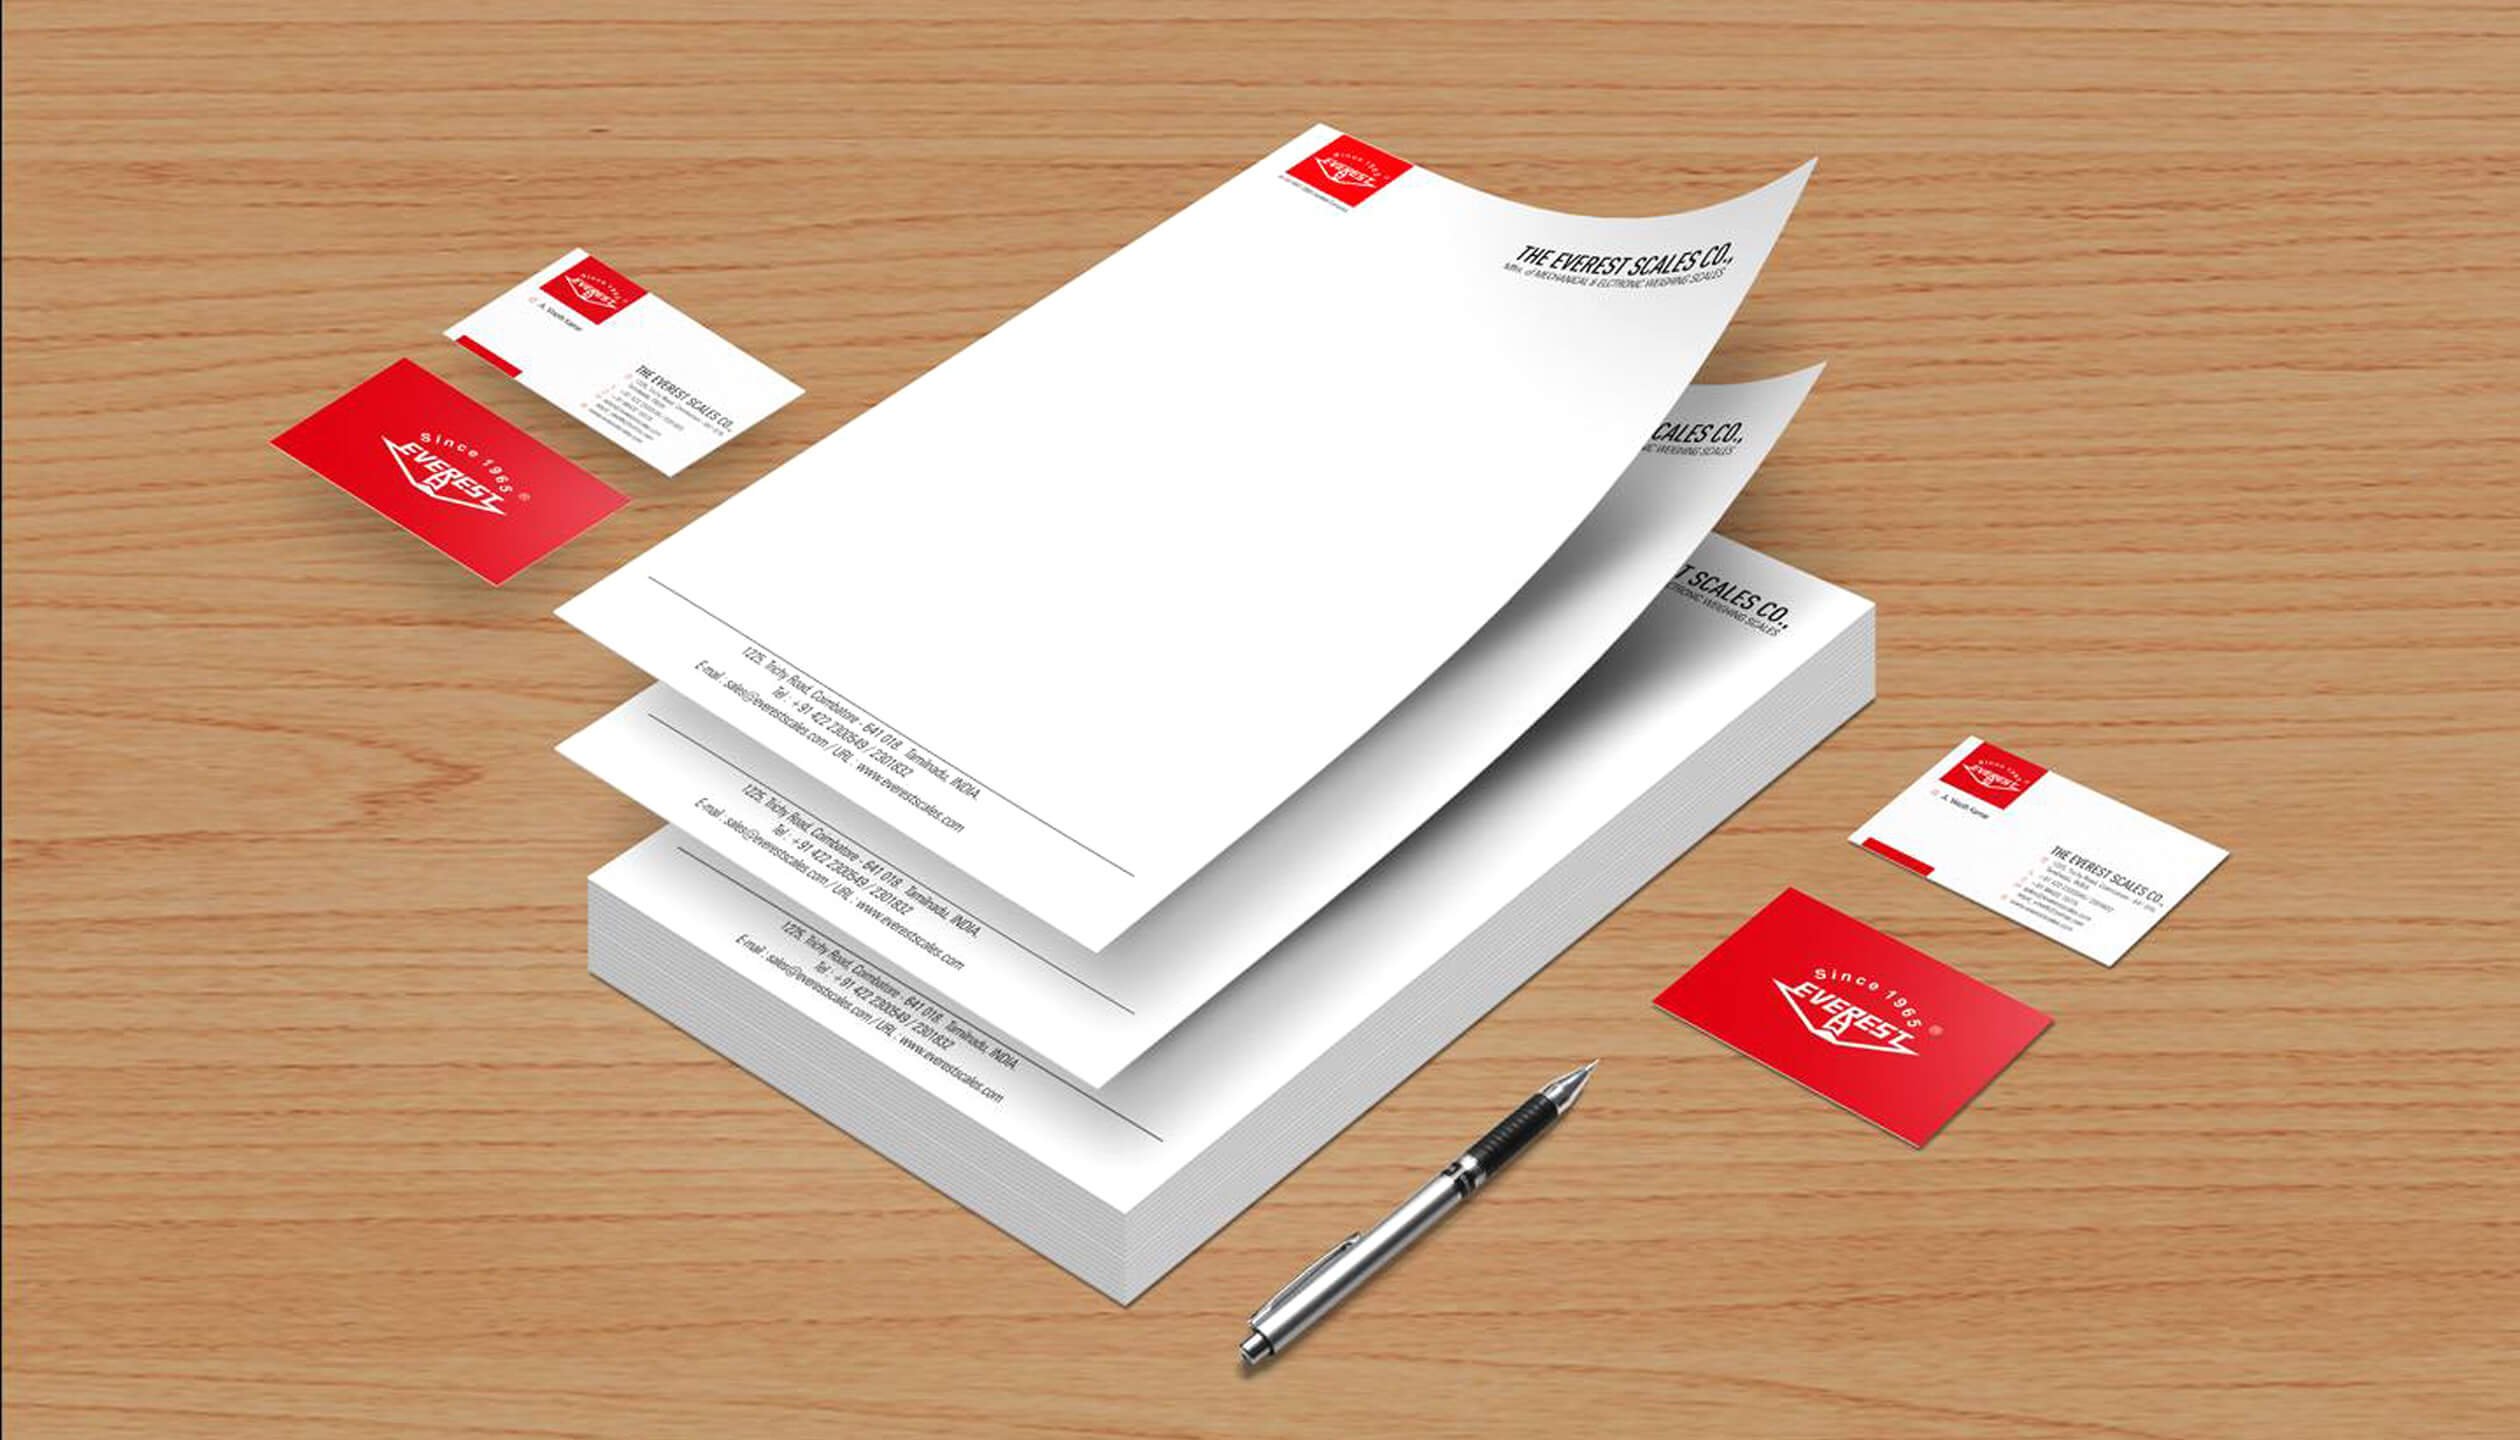 branding company in coimbatore - Mindworks Solutions